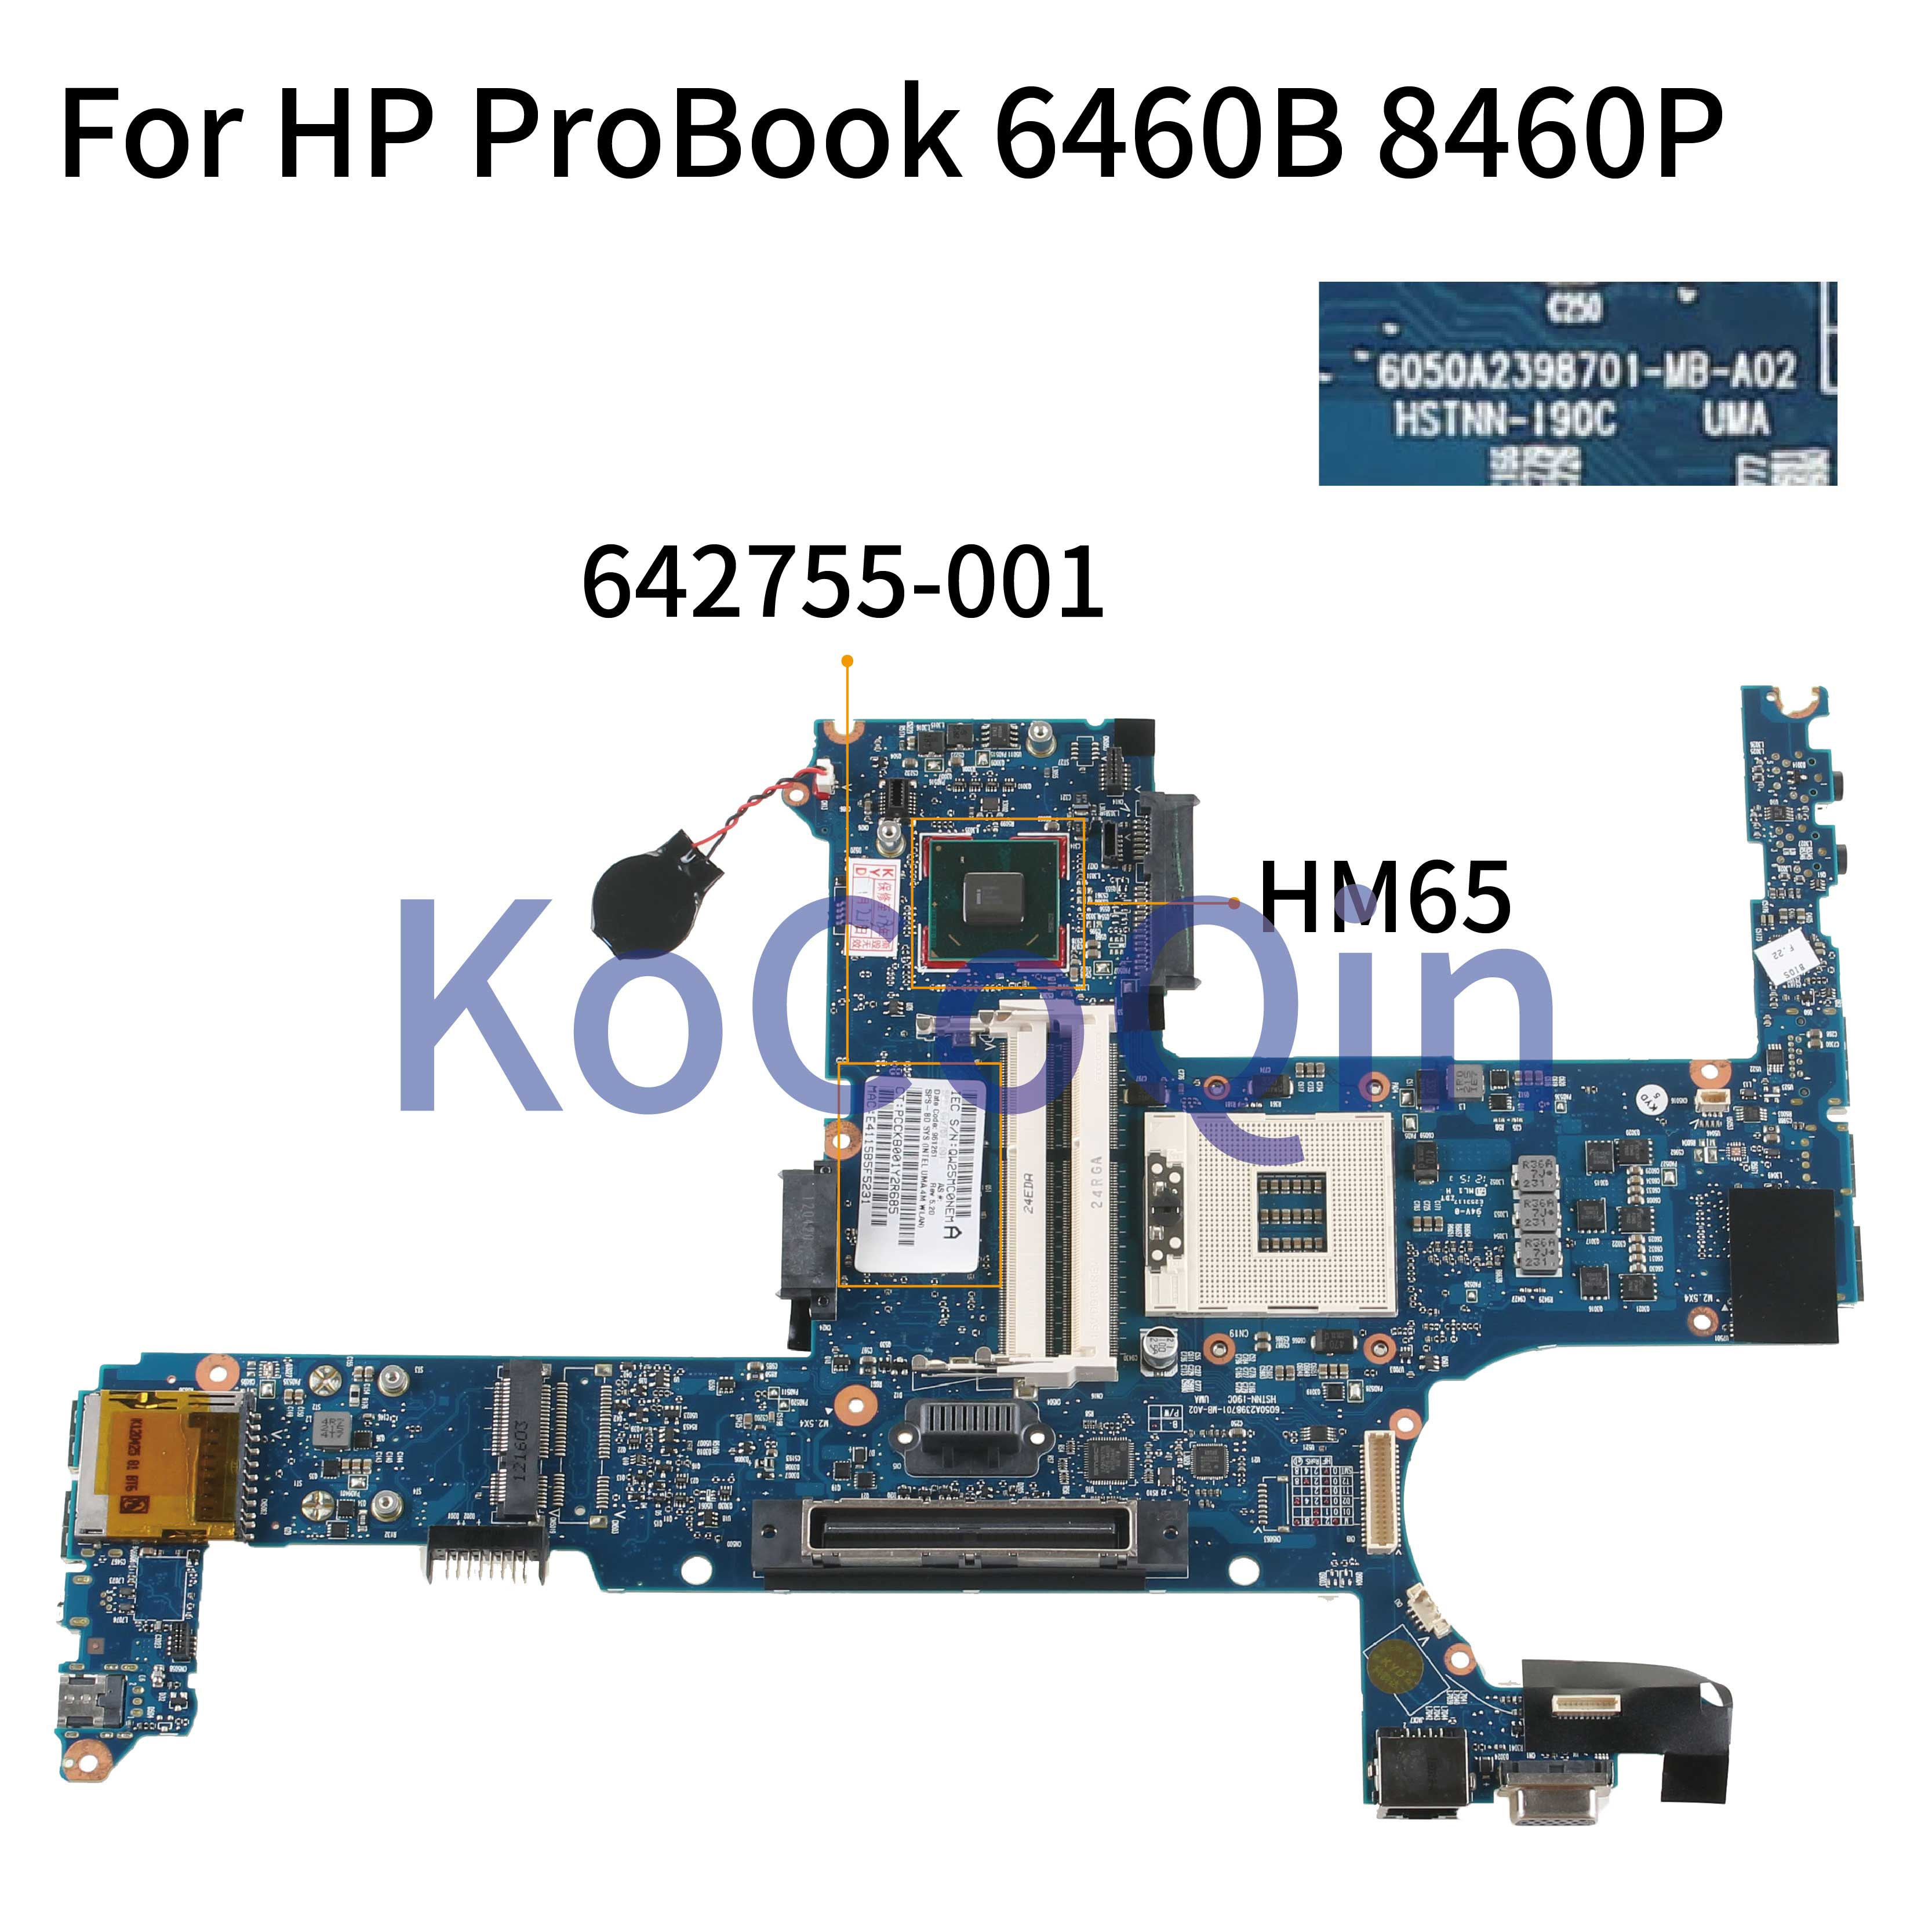 KoCoQin Laptop <font><b>motherboard</b></font> For <font><b>HP</b></font> ProBook 6460B <font><b>8460P</b></font> Mainboard 642755-001 642755-601 6050A2398701-MB-A02 HM65 image